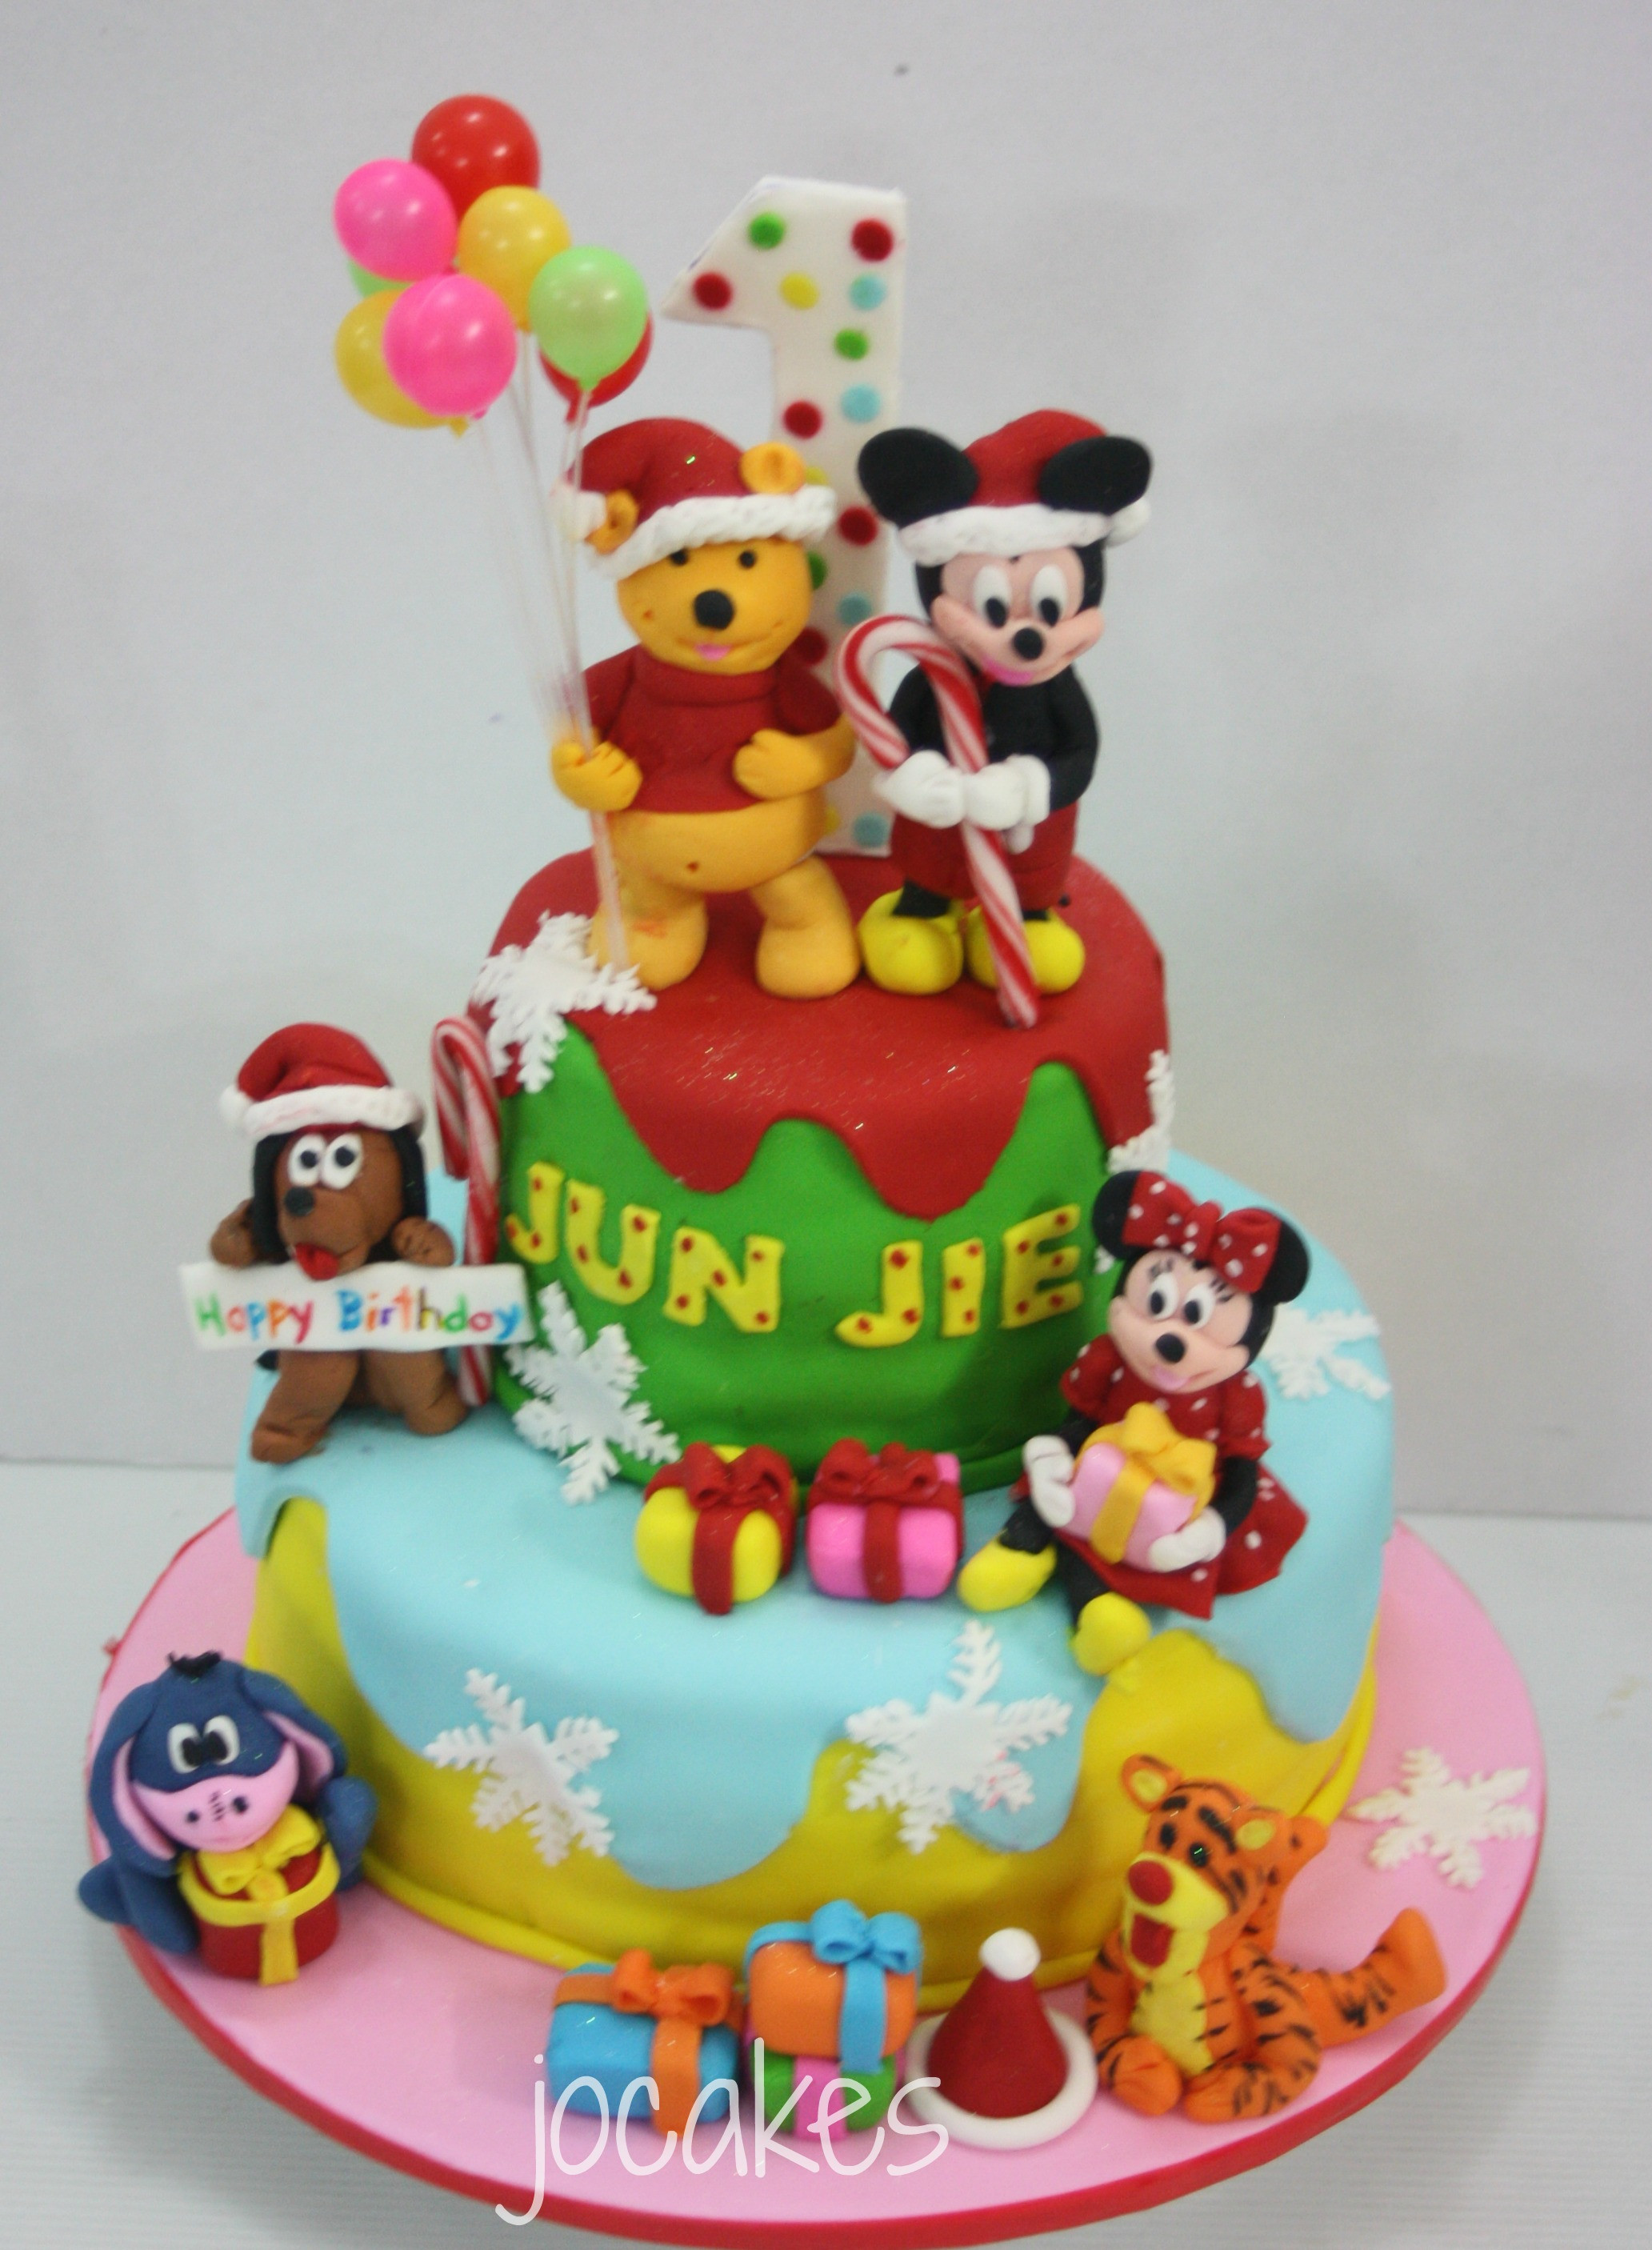 Best ideas about Winnie The Pooh Birthday Cake . Save or Pin Winnie the Pooh cake Now.